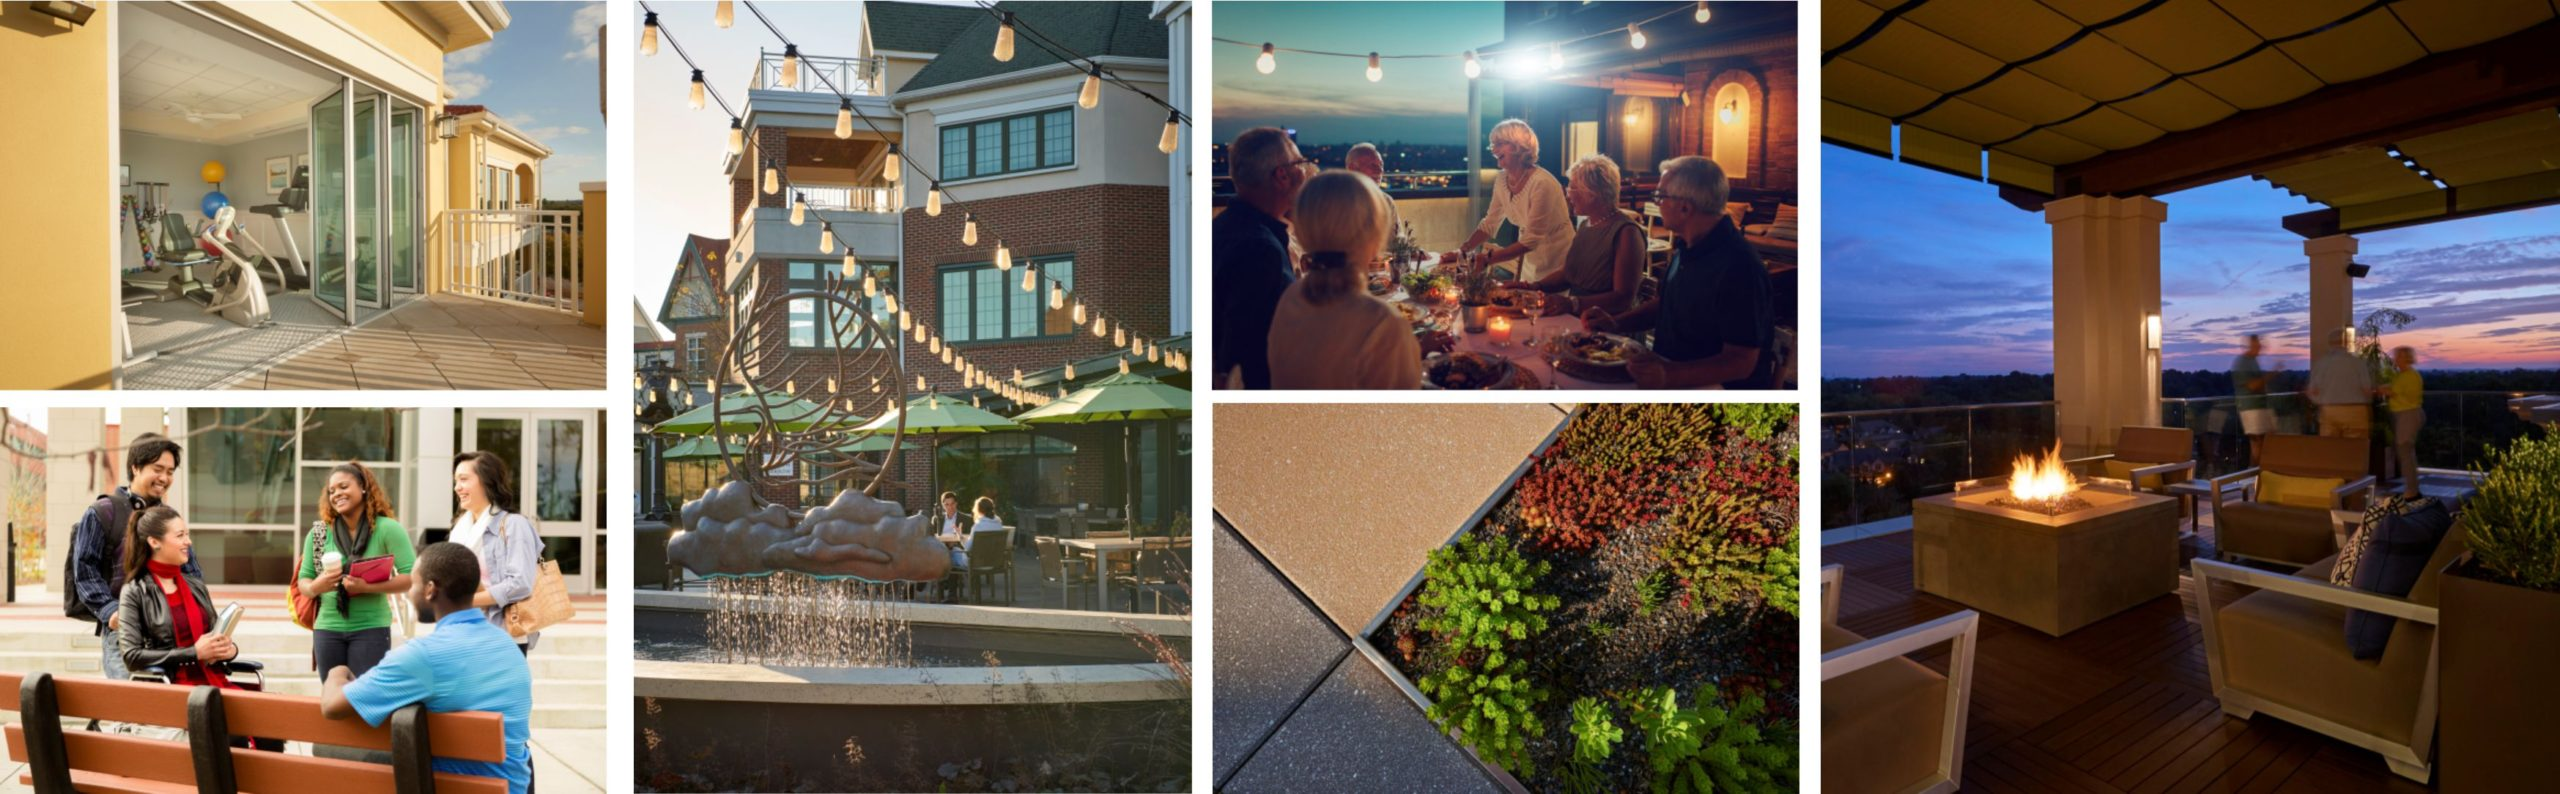 various outdoor spaces in a collage